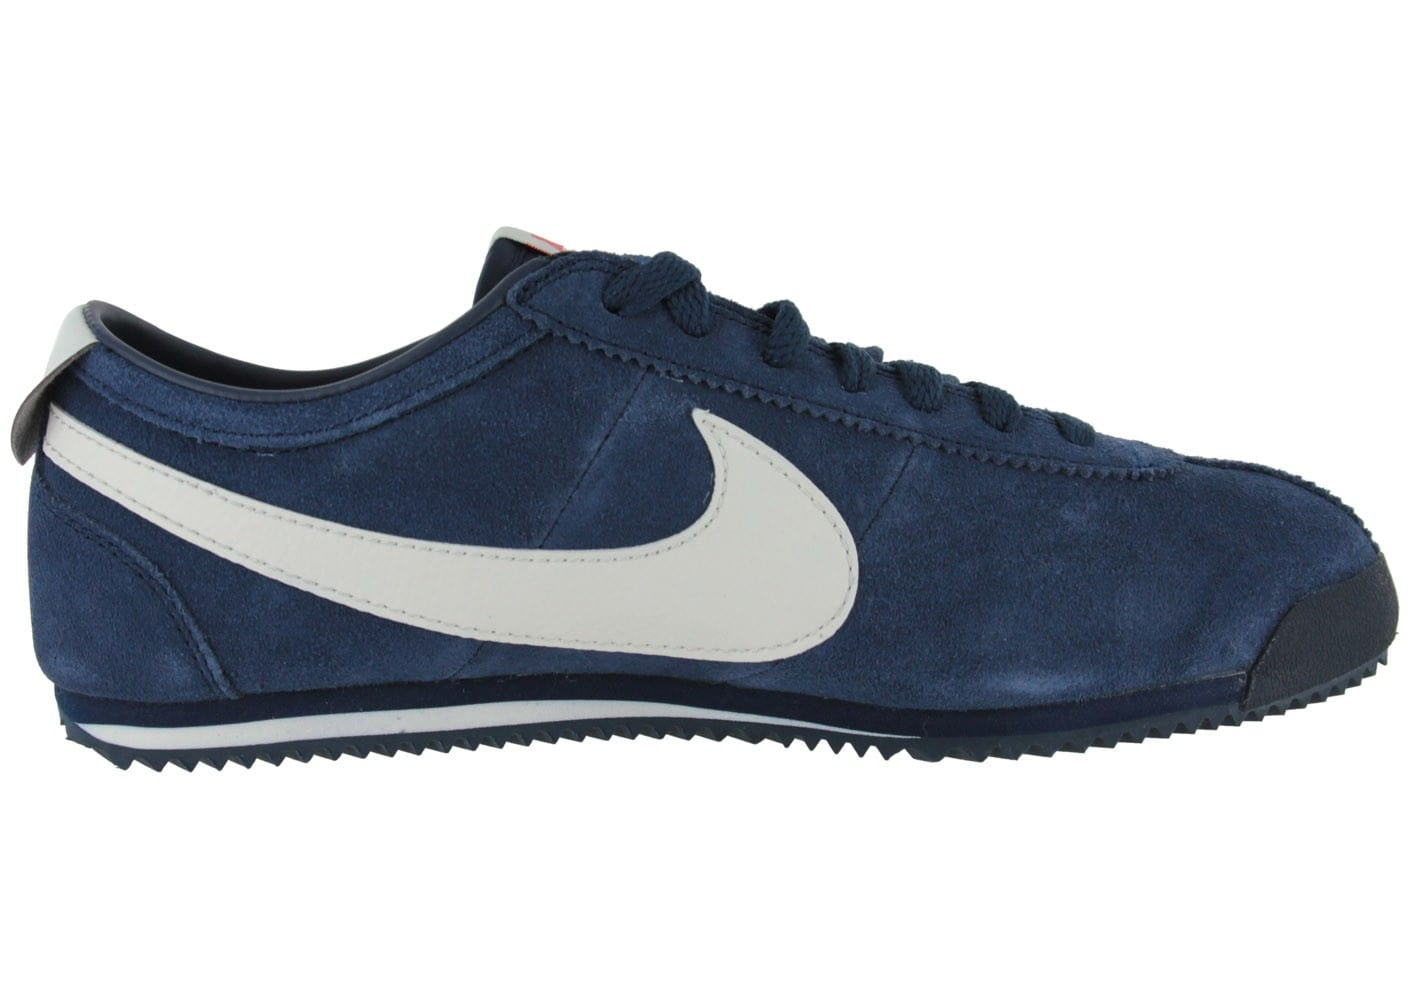 Nike Cortez Classic Chaussures Og Bleu Marine Chaussures Classic Baskets homme ee7246